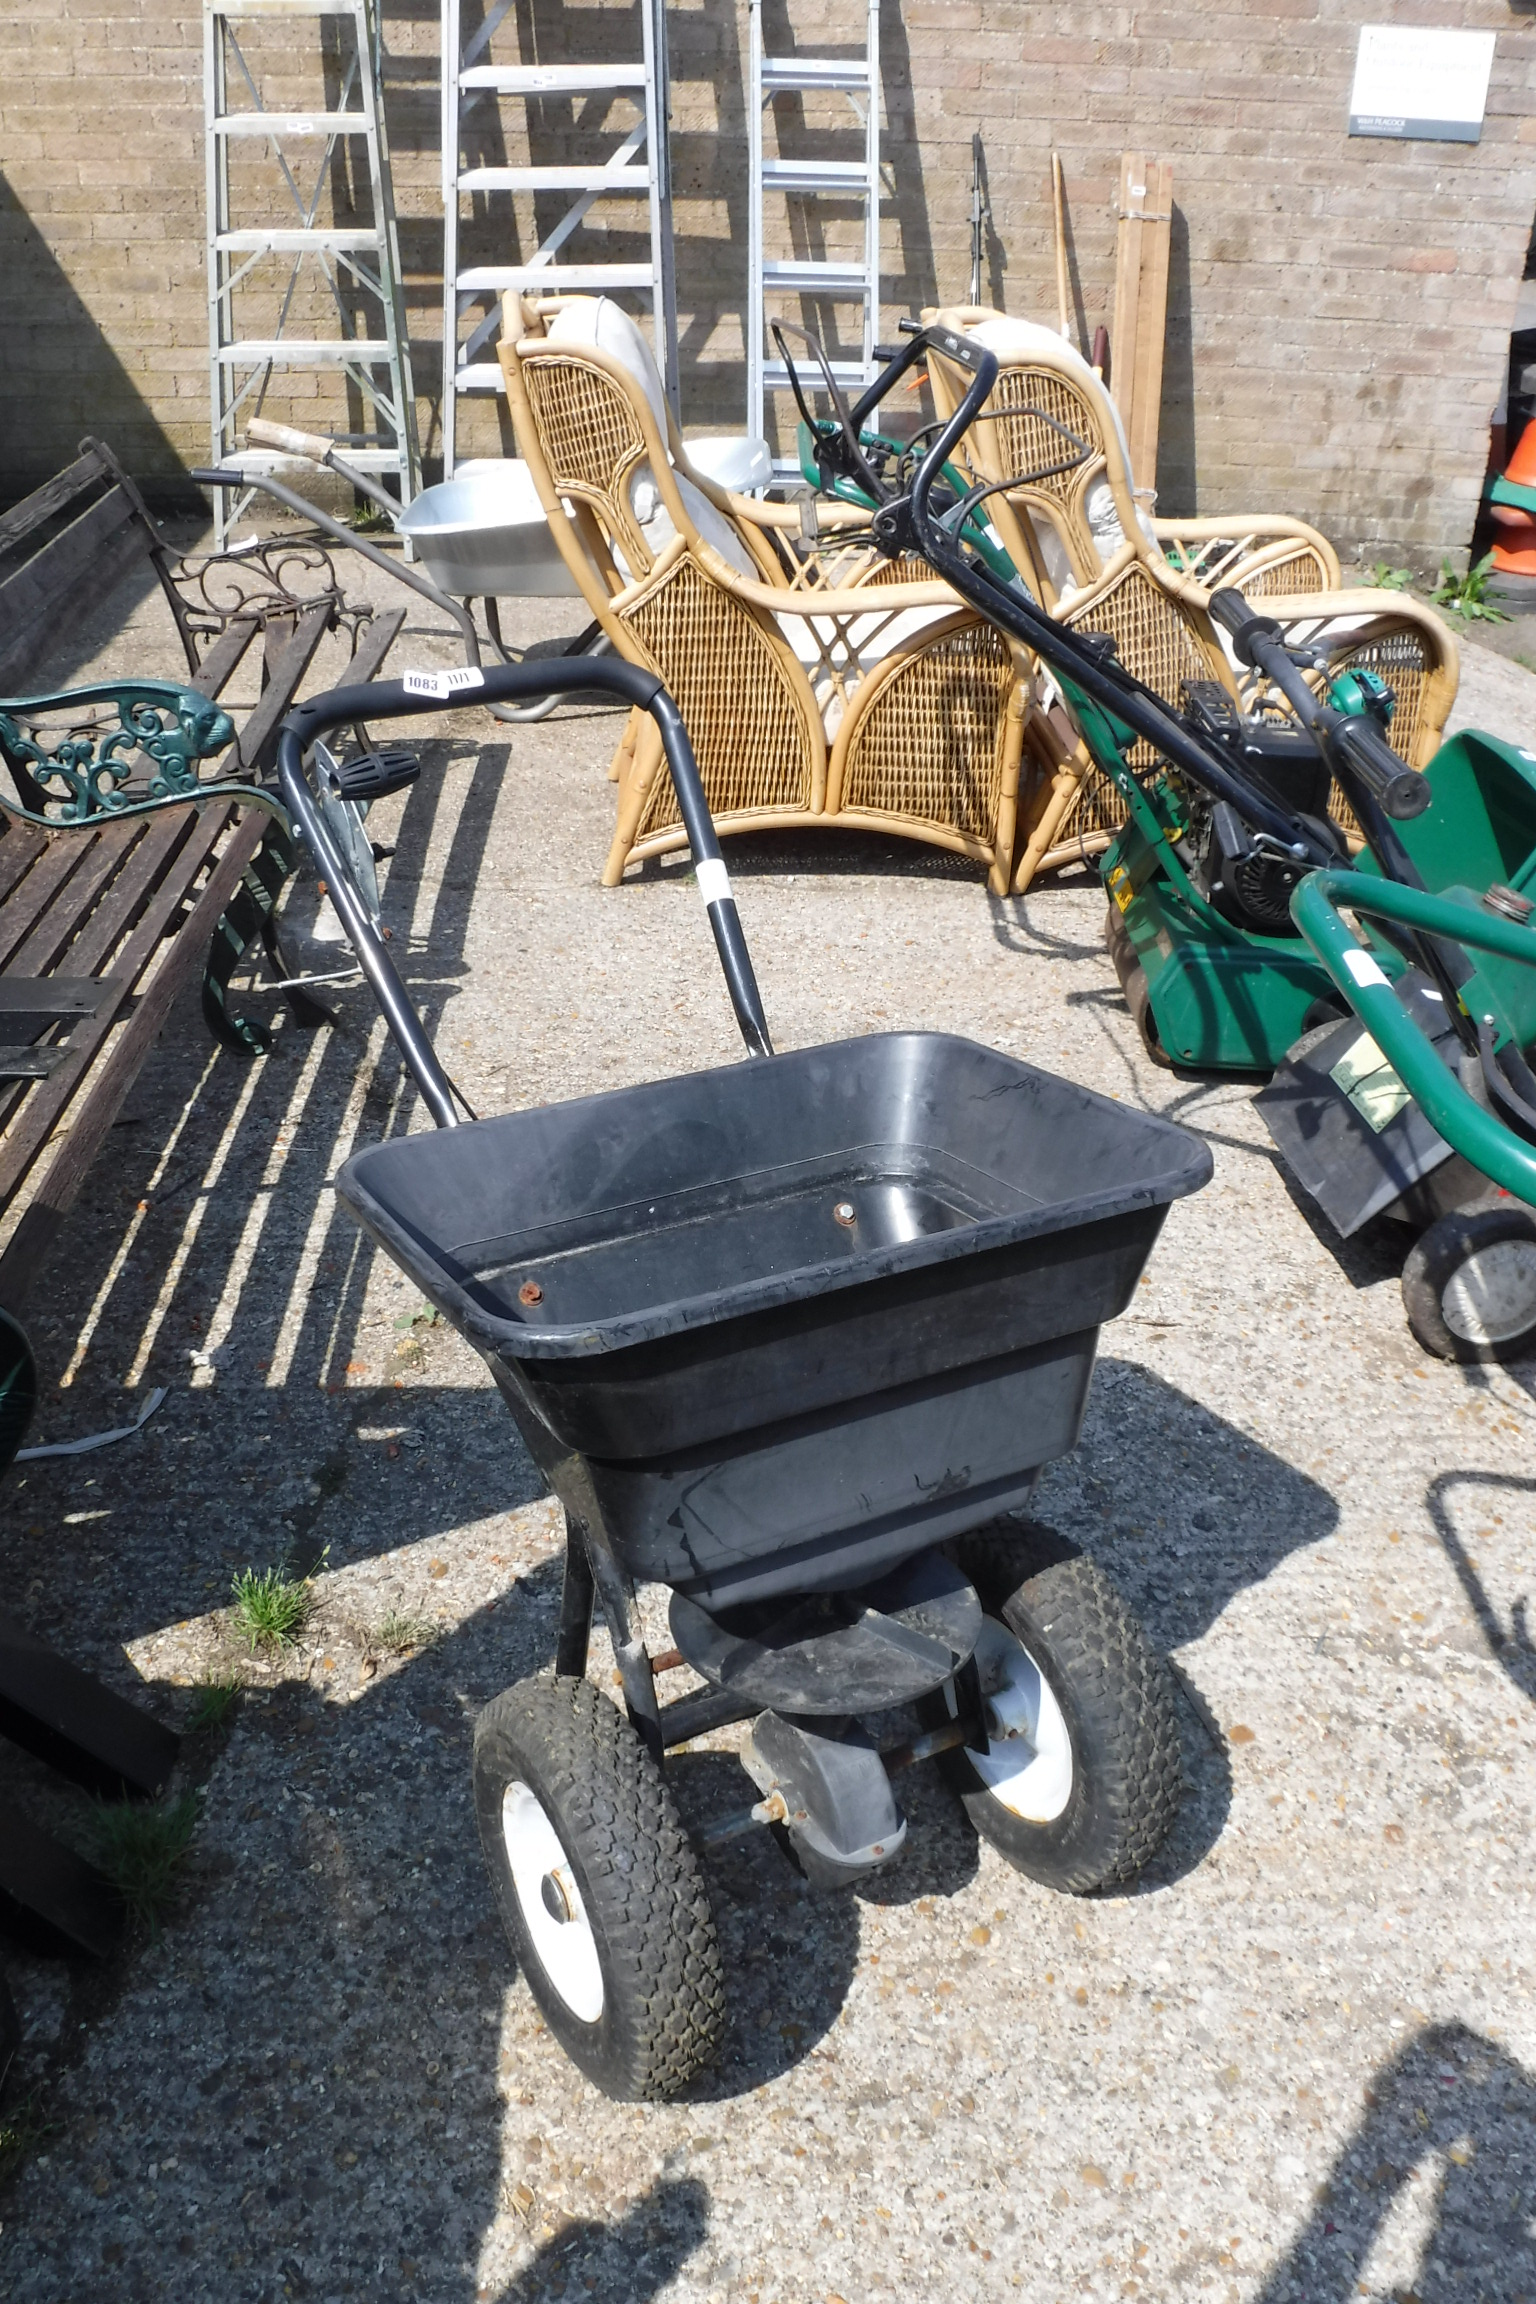 (1171) Manual powered seed spreader